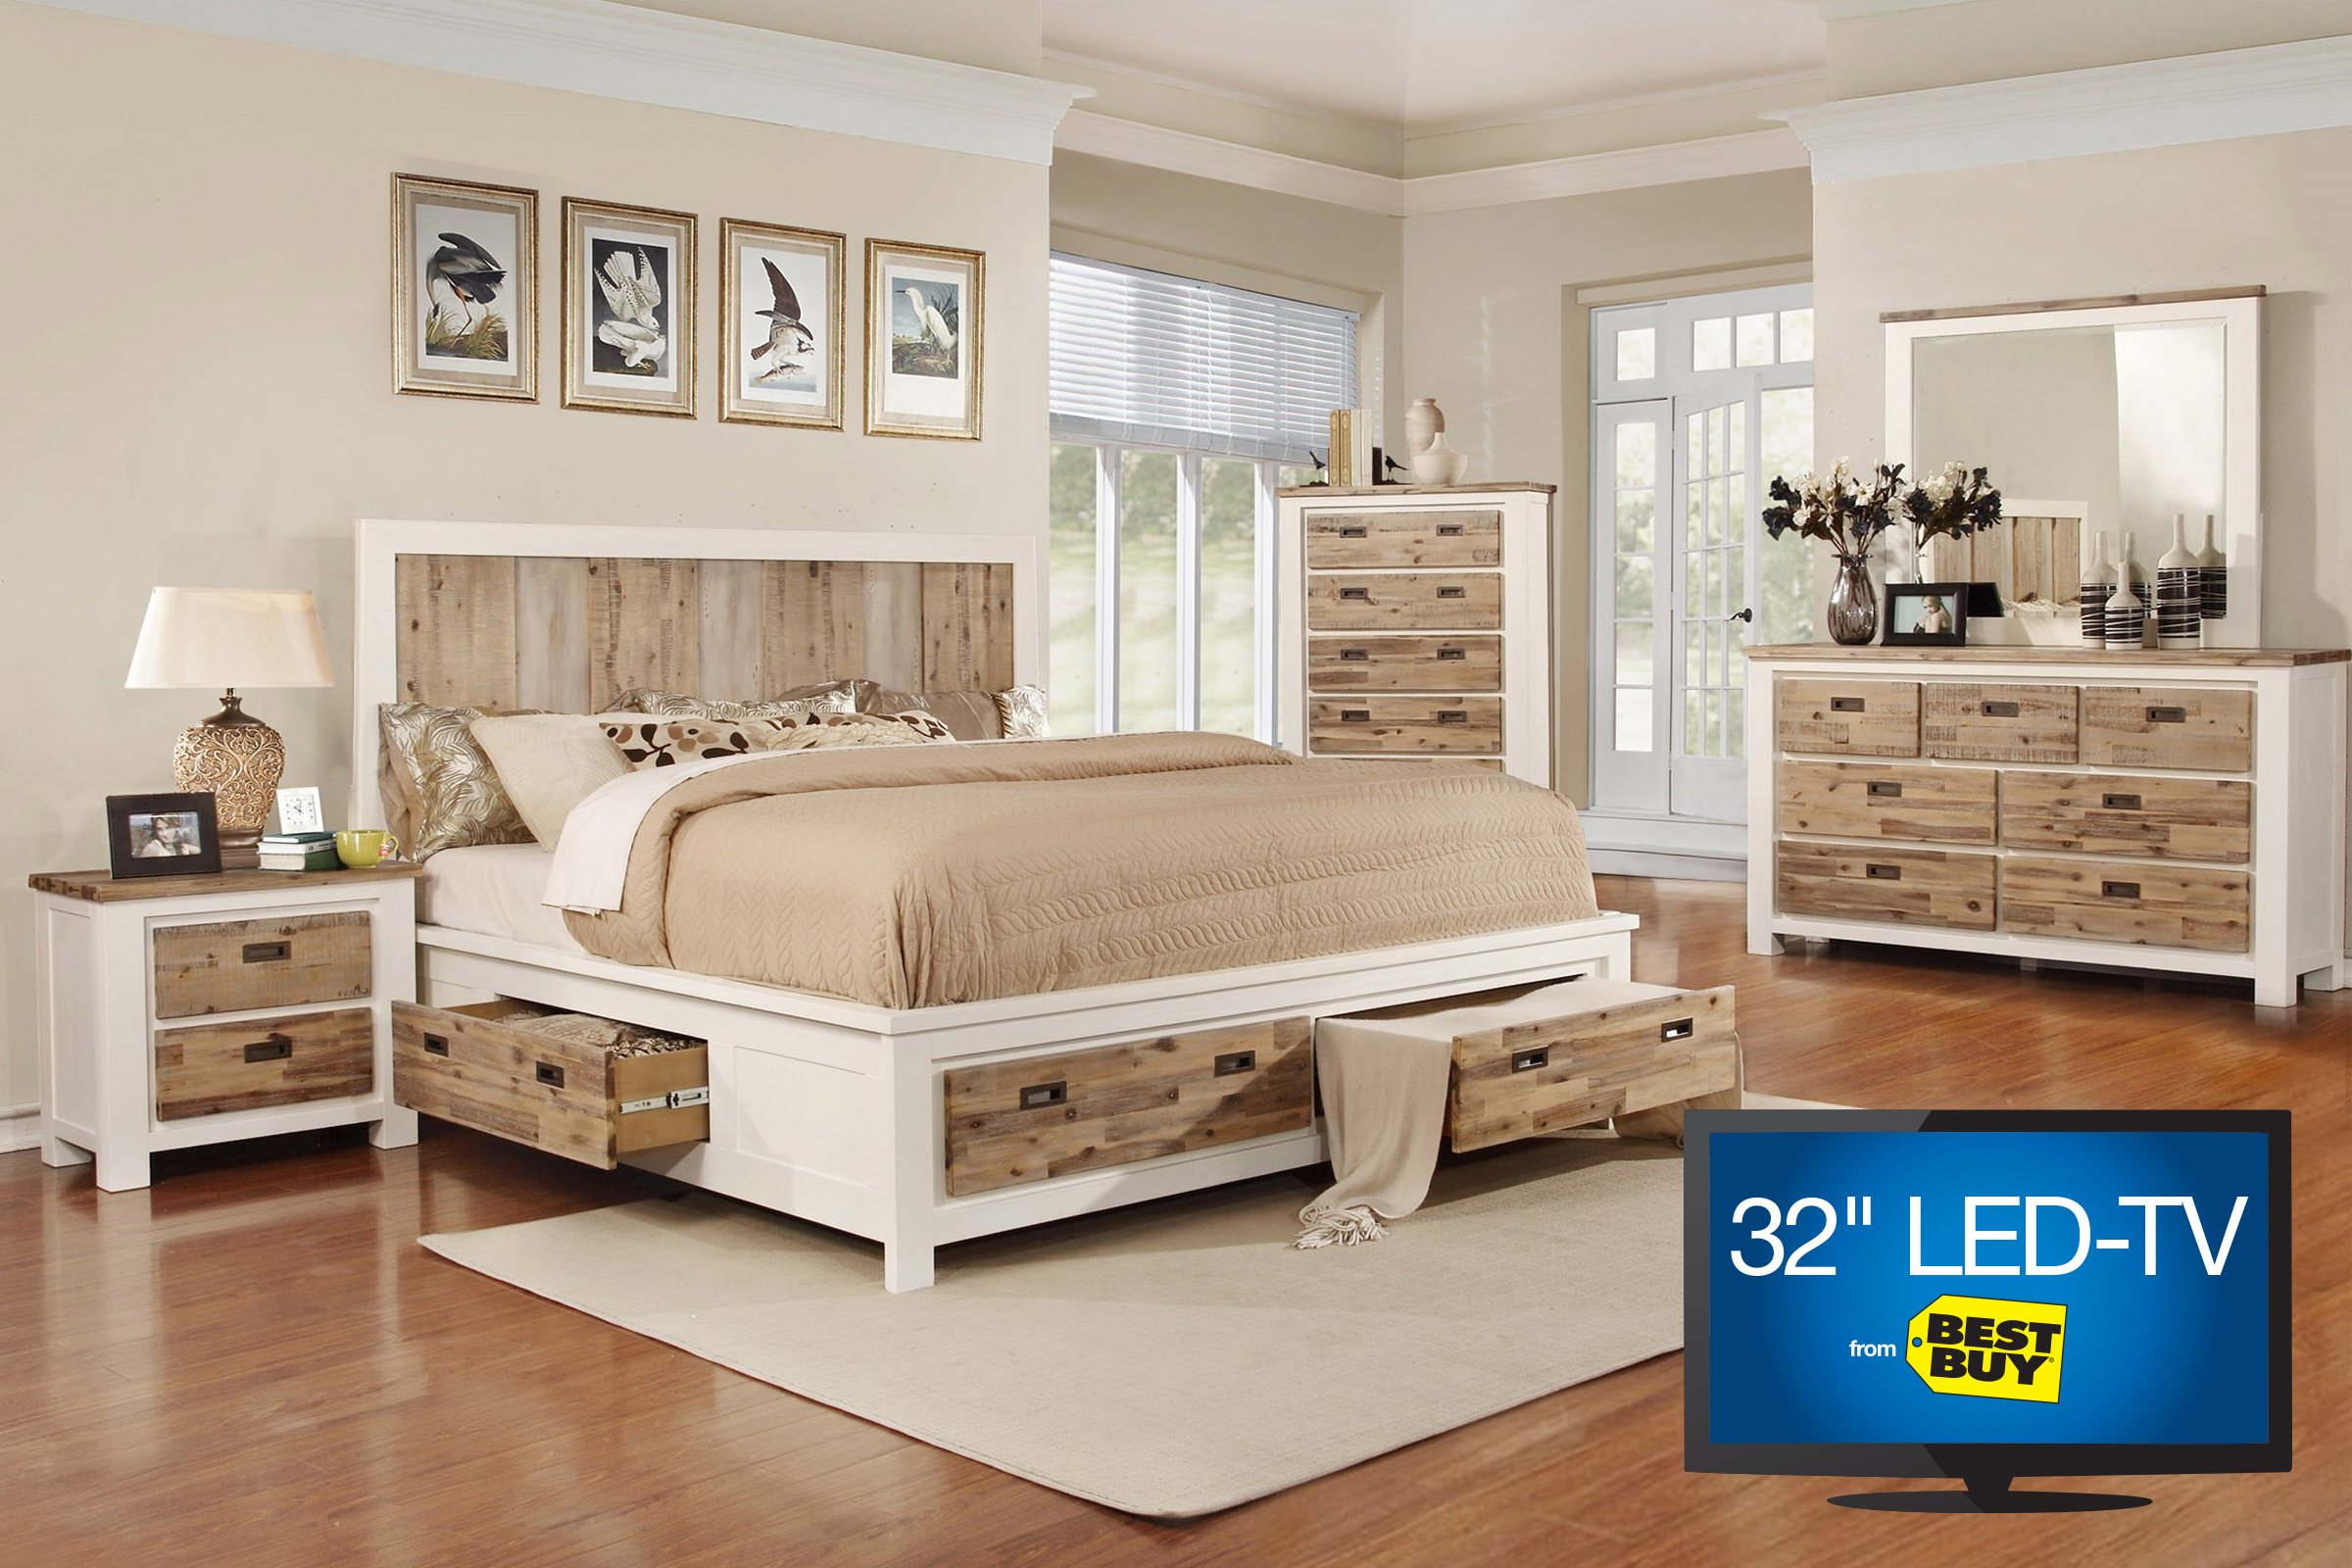 Western Queen Storage Bedroom Set with 32\